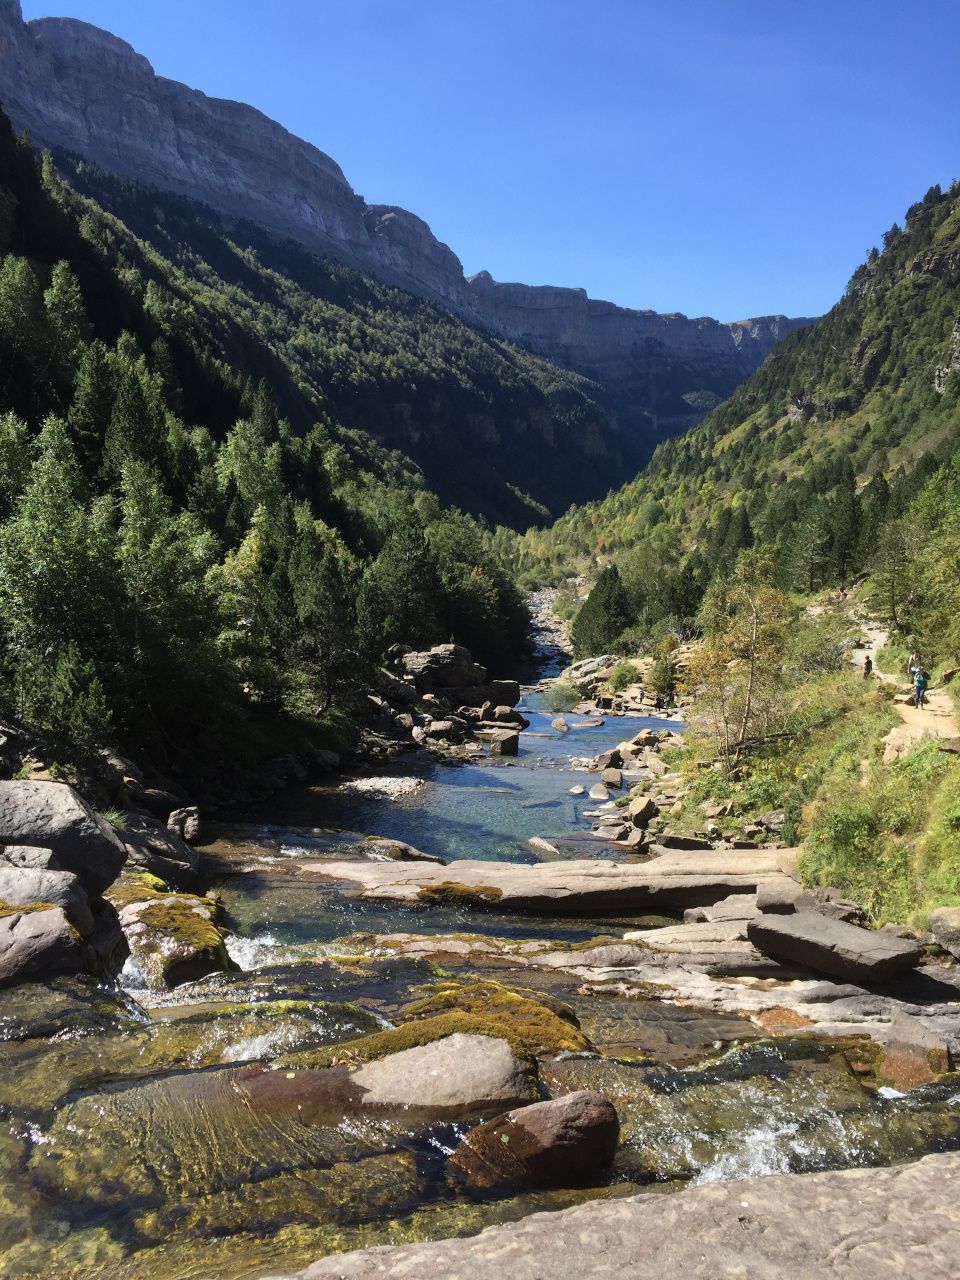 Ordessa Valley, Pyrenees. This article presents you the top destinations in Spain as well as the Spanish life, Spanish customs - everything you need to know before you travel to Spain